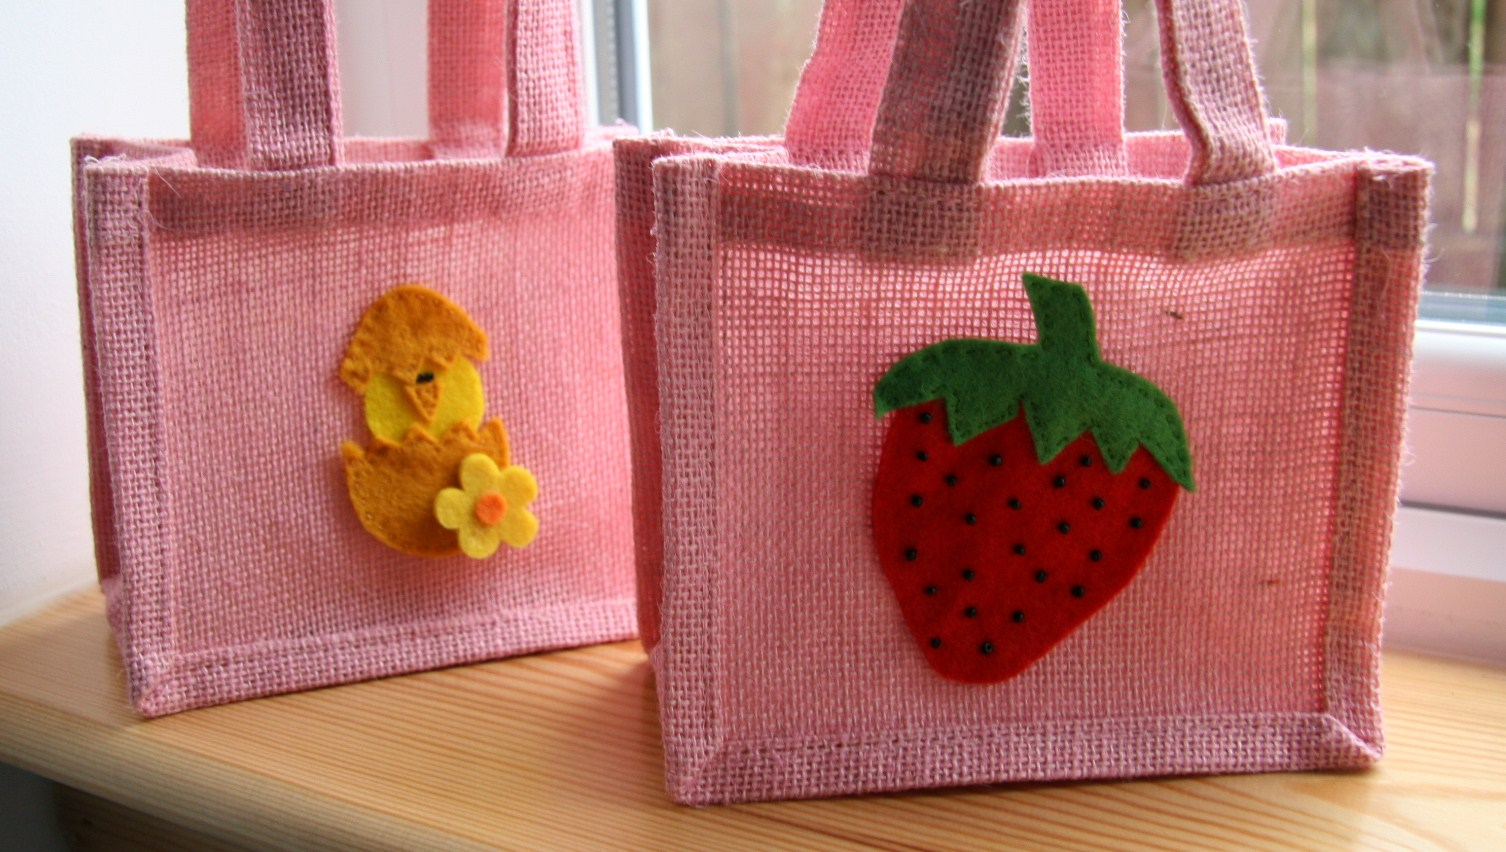 Wedding Return Gift Bags : have now completed a selection of decorated jute bags, each of which ...